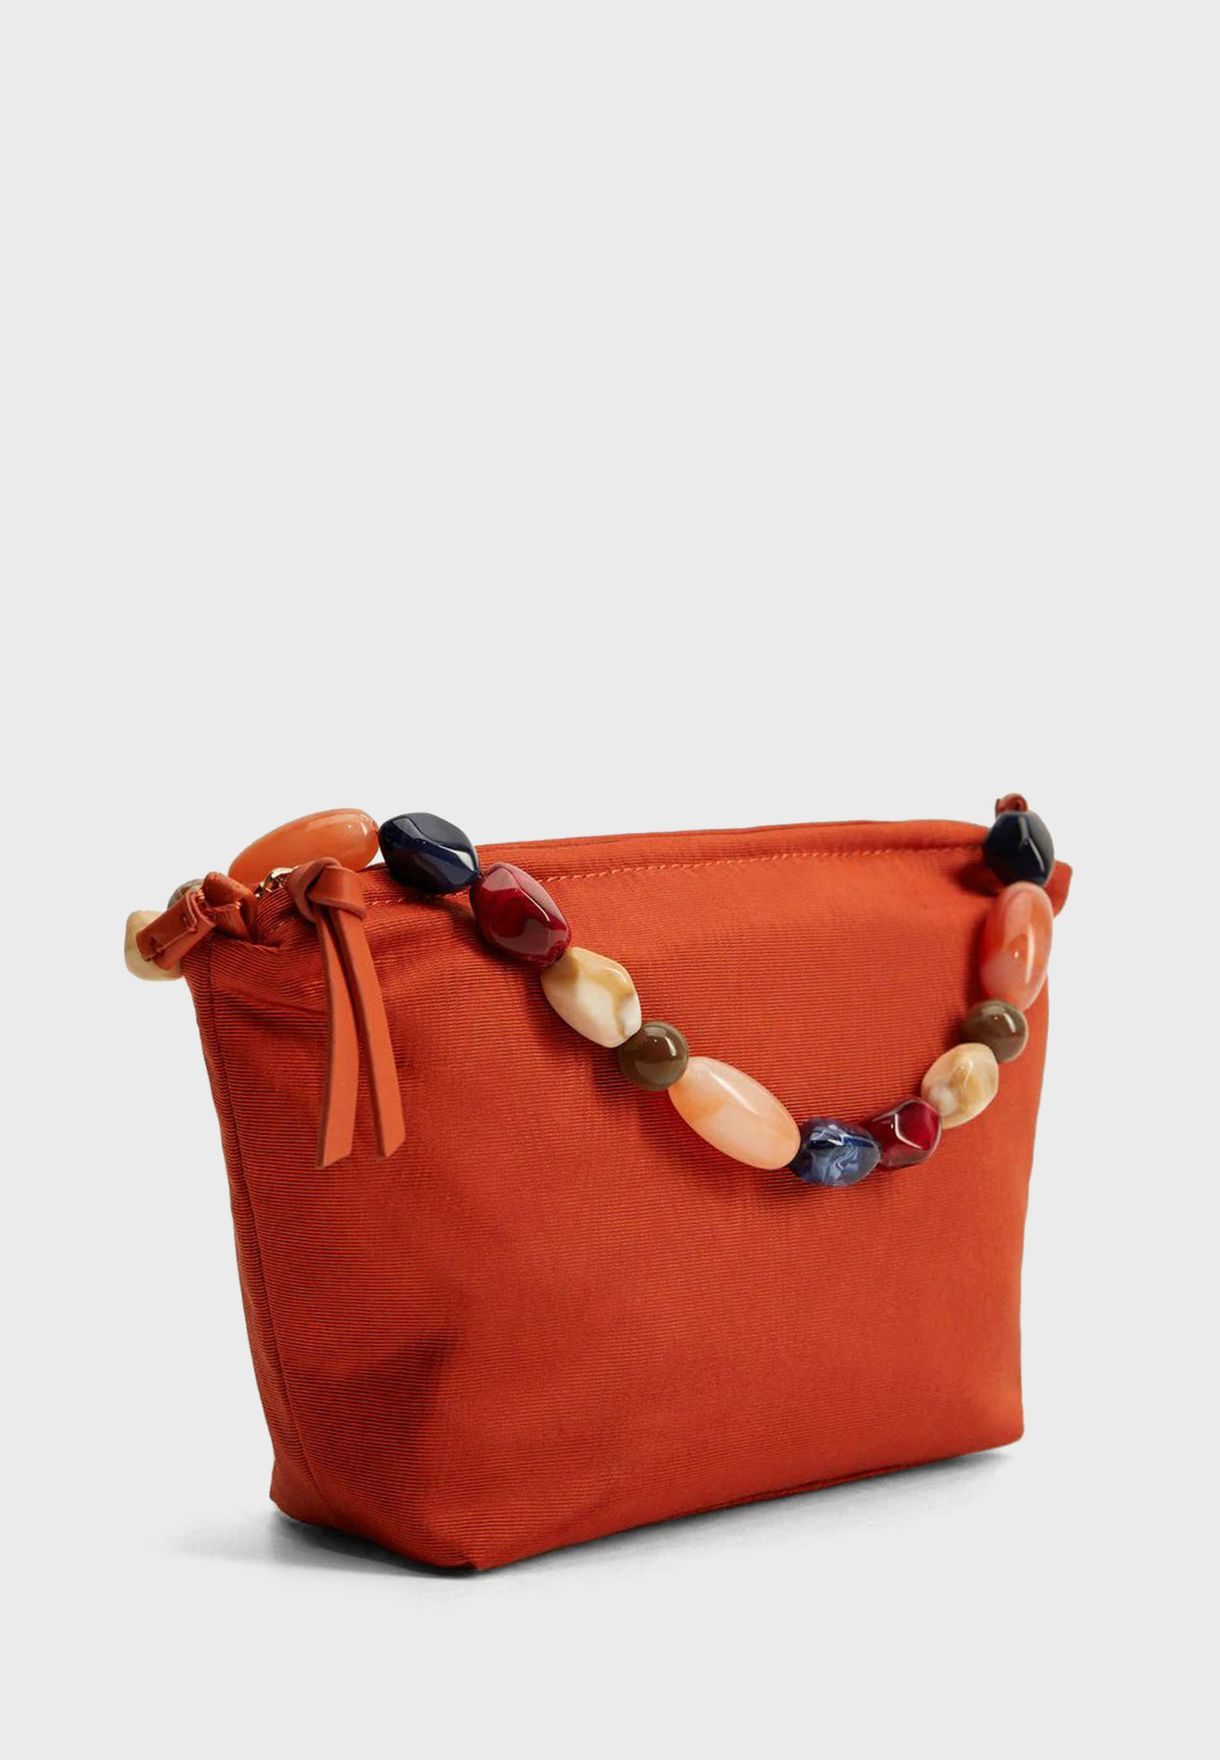 Crystal Beads Strap Tote